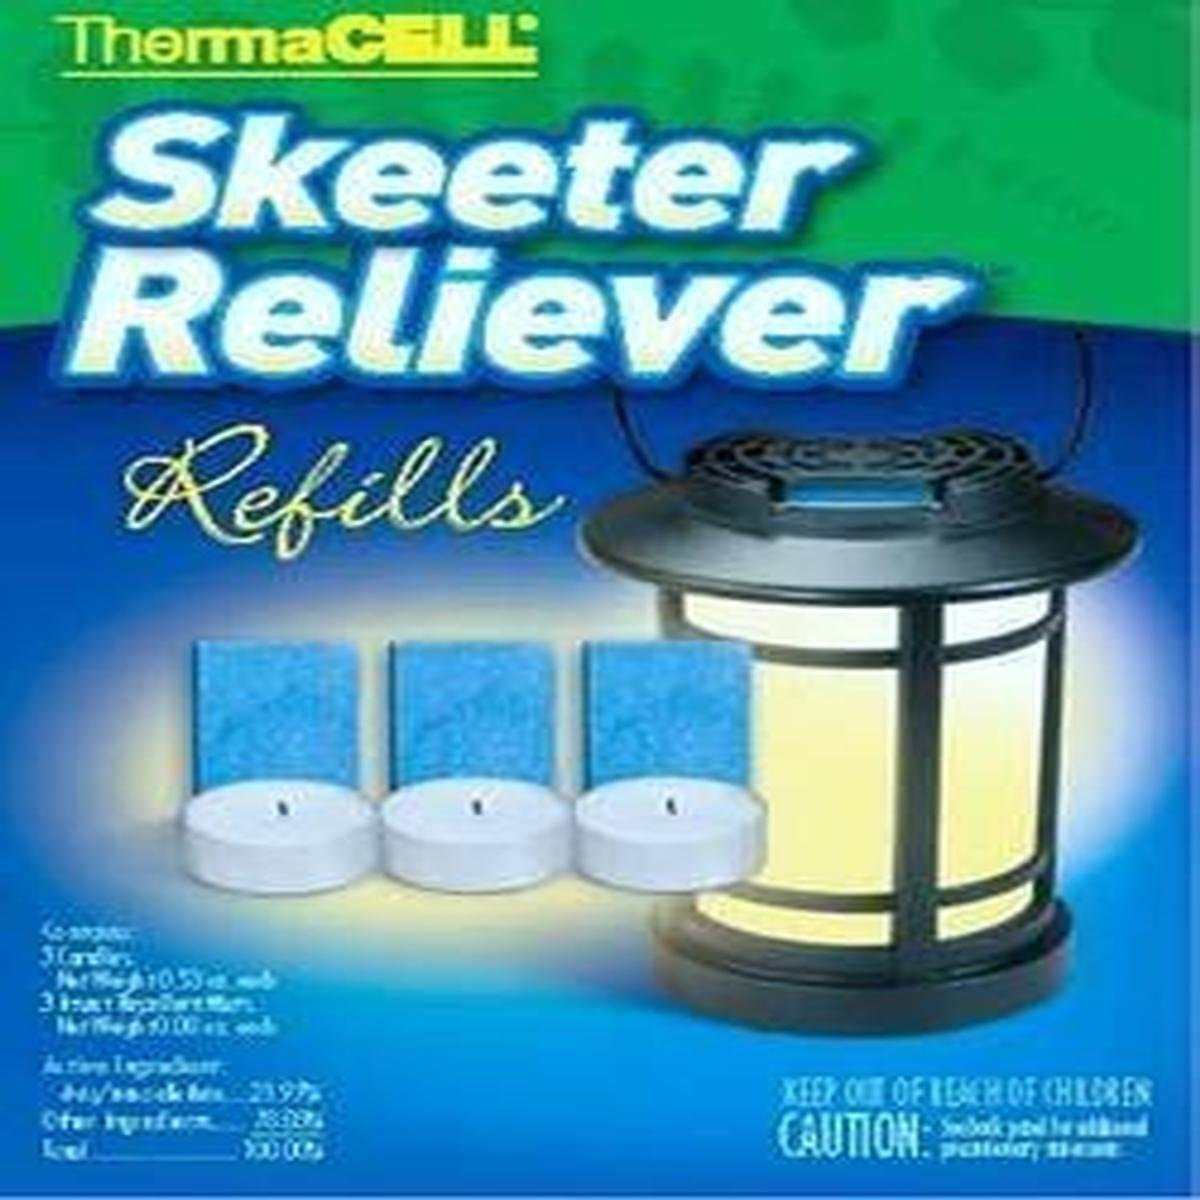 New ThermaCell Skeeter Reliever SR-1 Refills 4